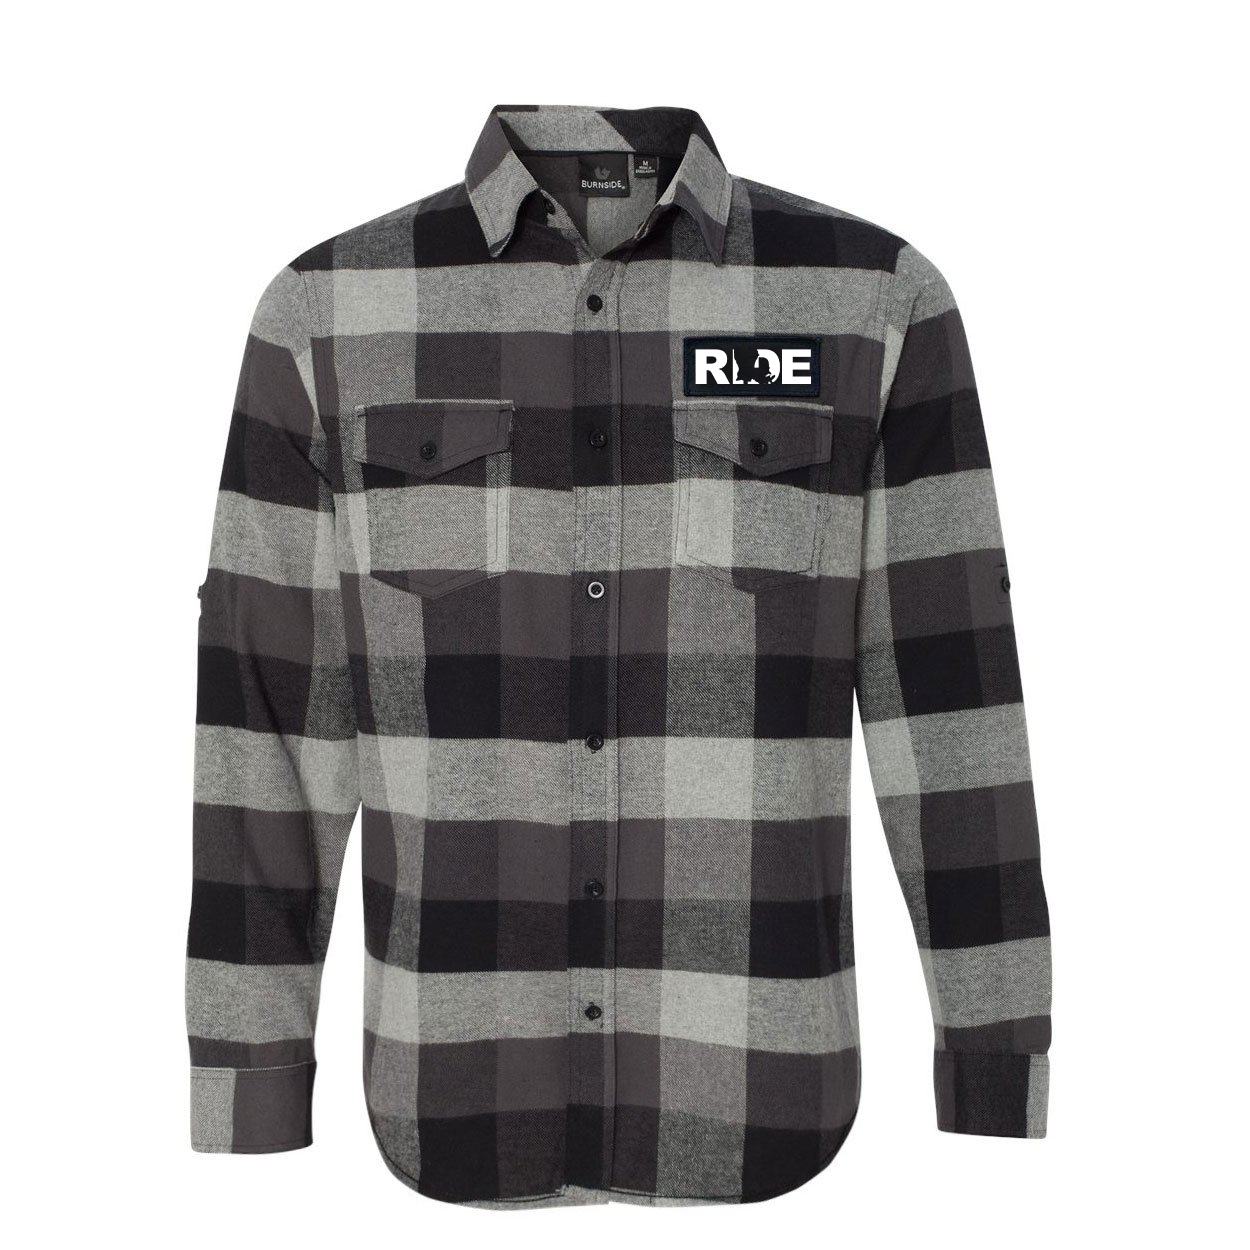 Ride Louisiana Classic Unisex Long Sleeve Woven Patch Flannel Shirt Black/Gray (White Logo)